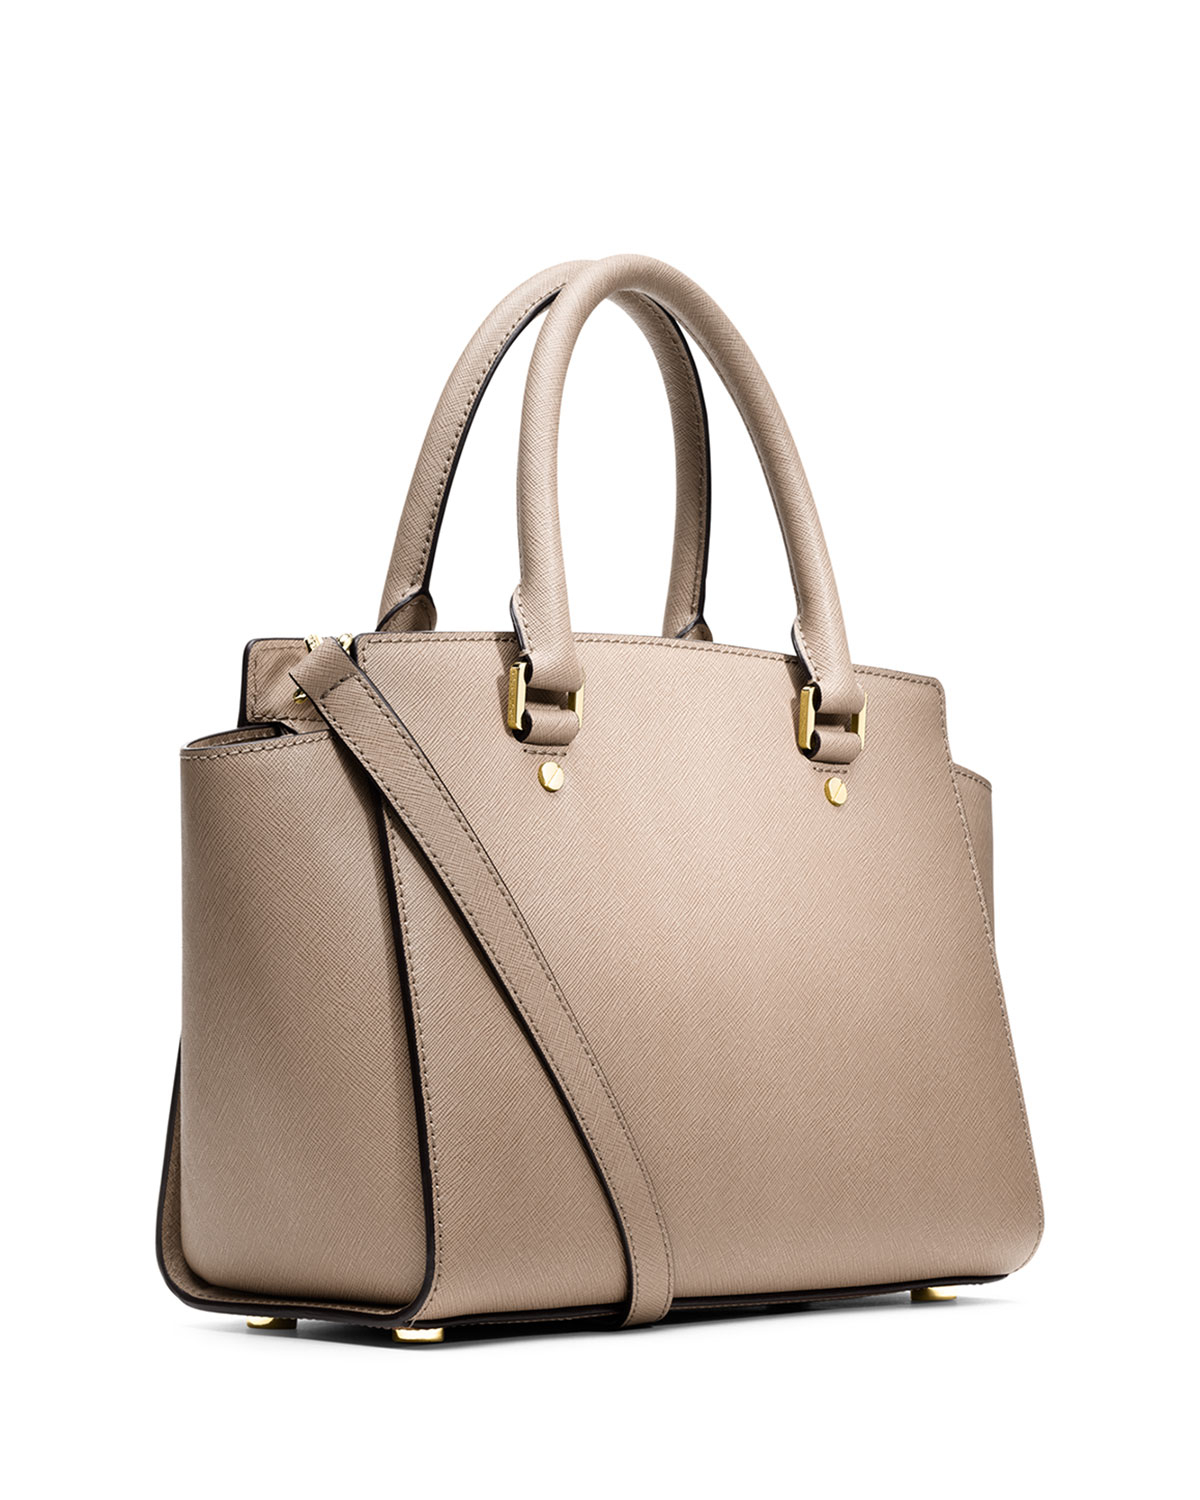 118c0791ea72 Lyst - MICHAEL Michael Kors Selma Medium Satchel Bag in Natural